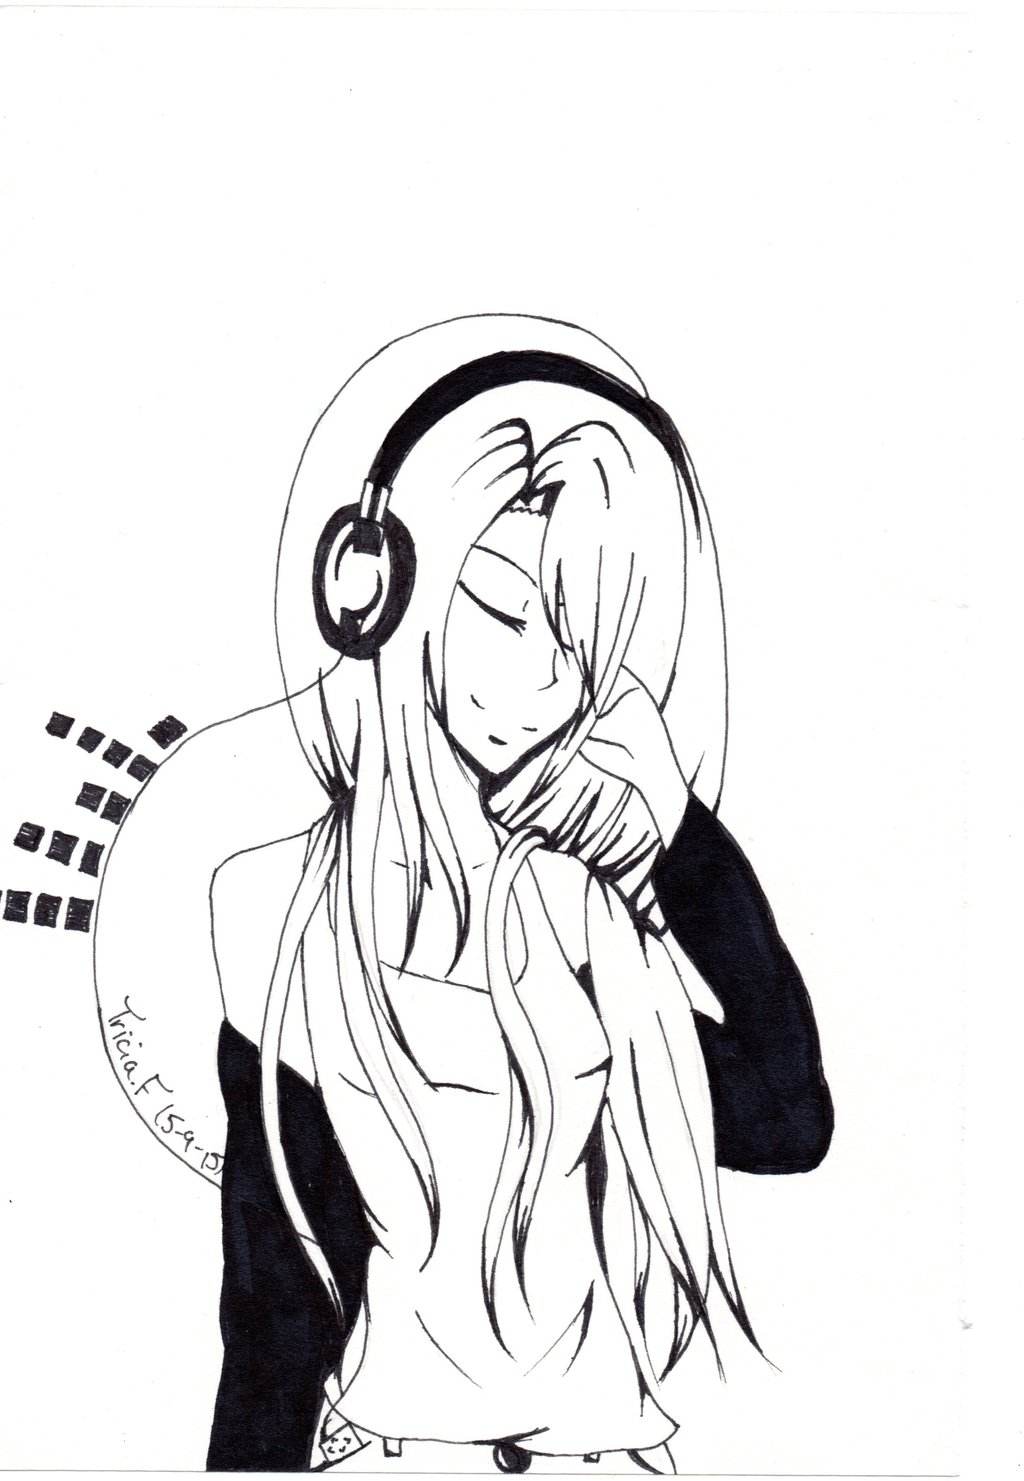 1024x1481 Headphone Anime Girl by TriciaCreations on DeviantArt